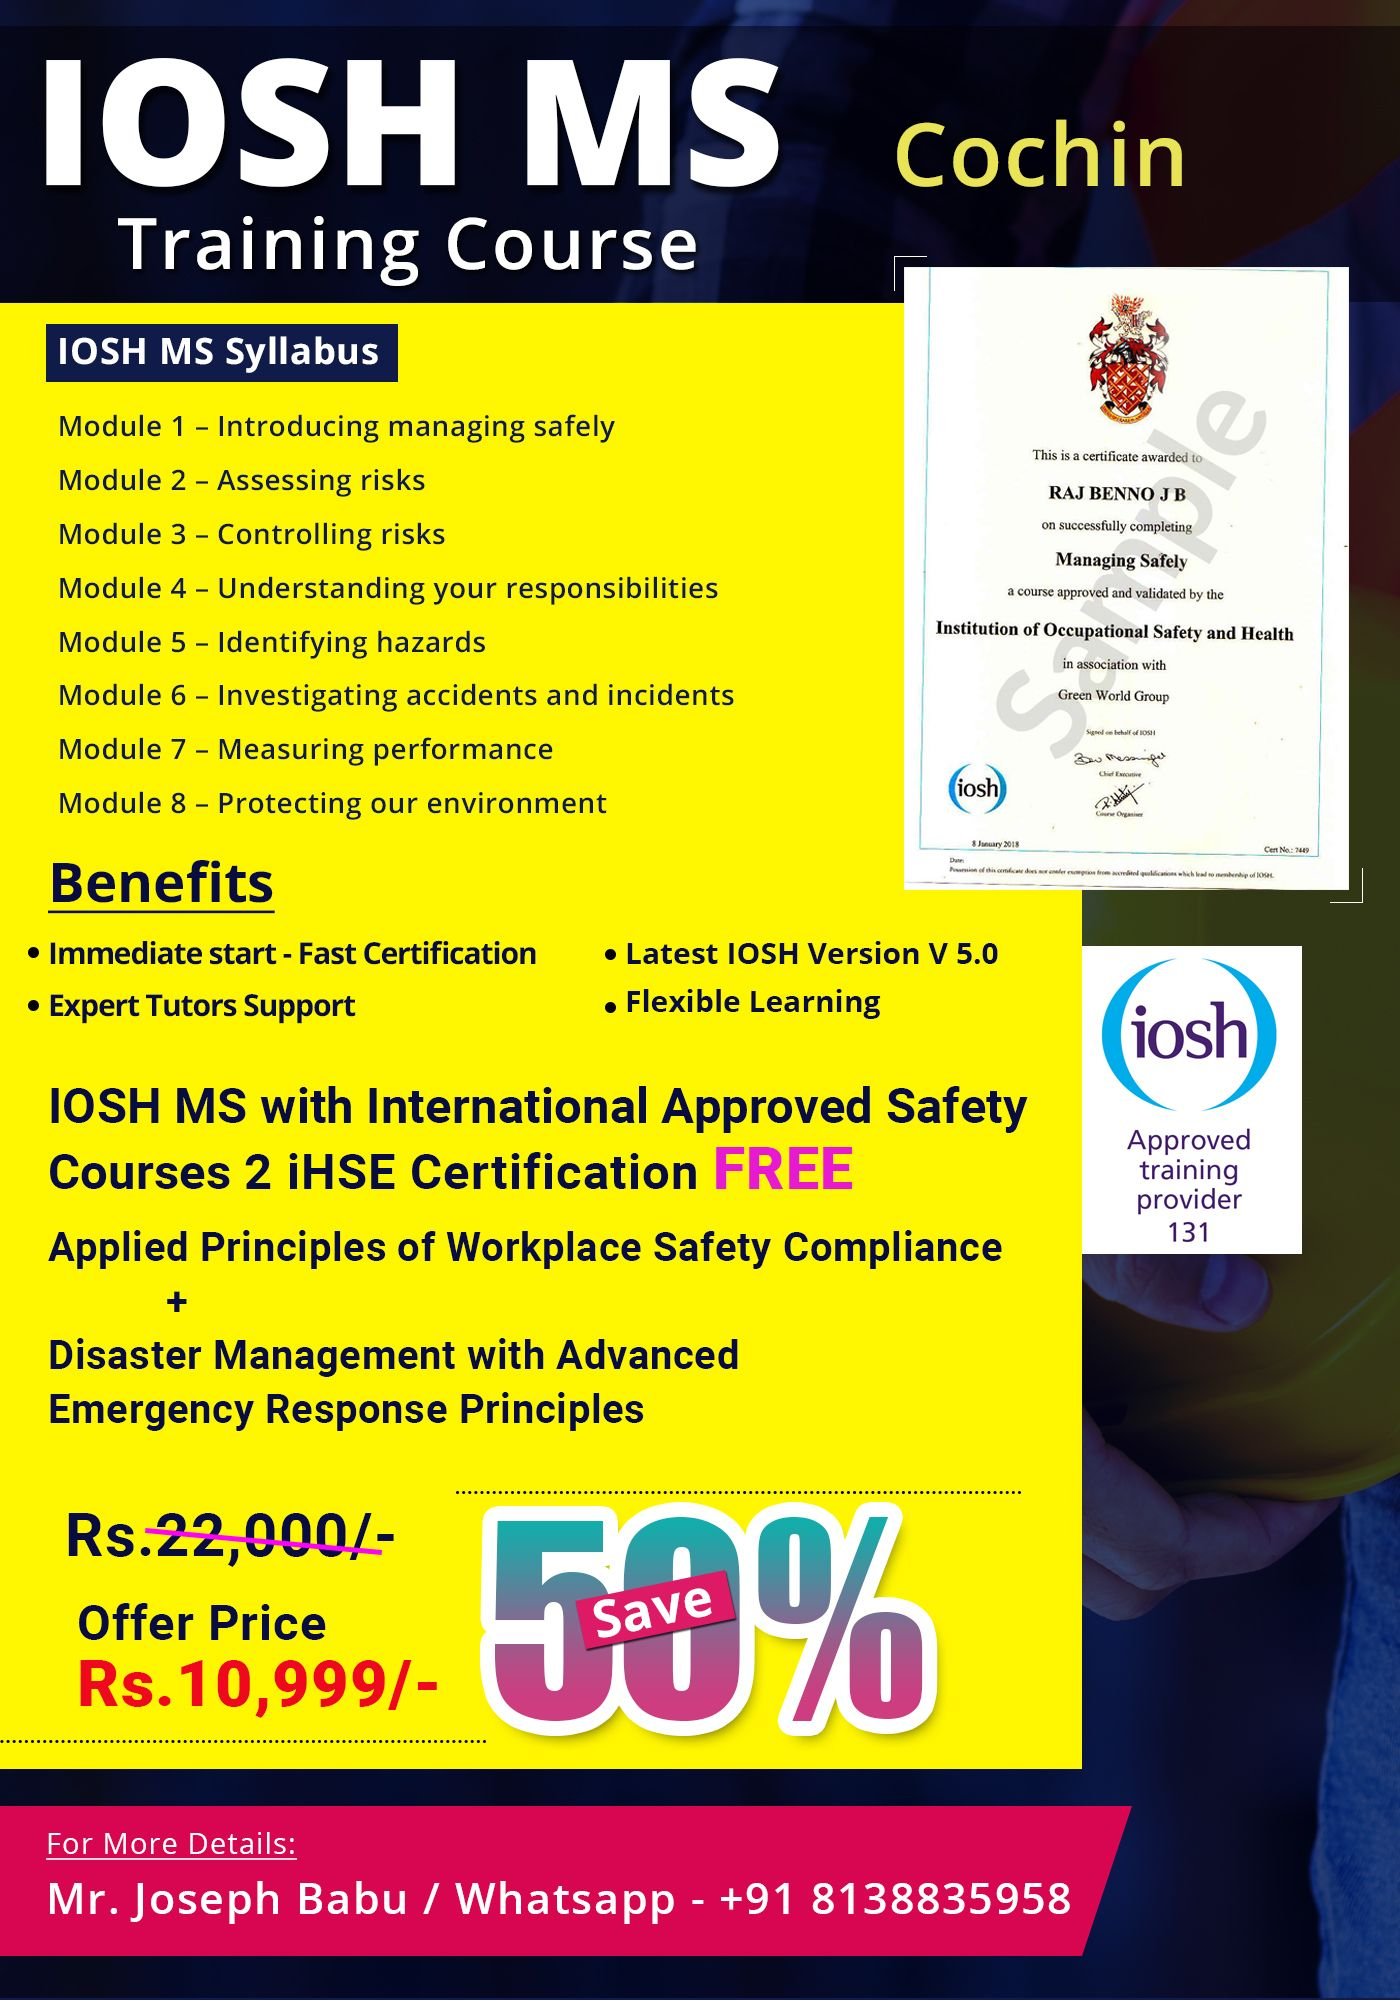 The IOSH MS Course in Cochin is for people who would like